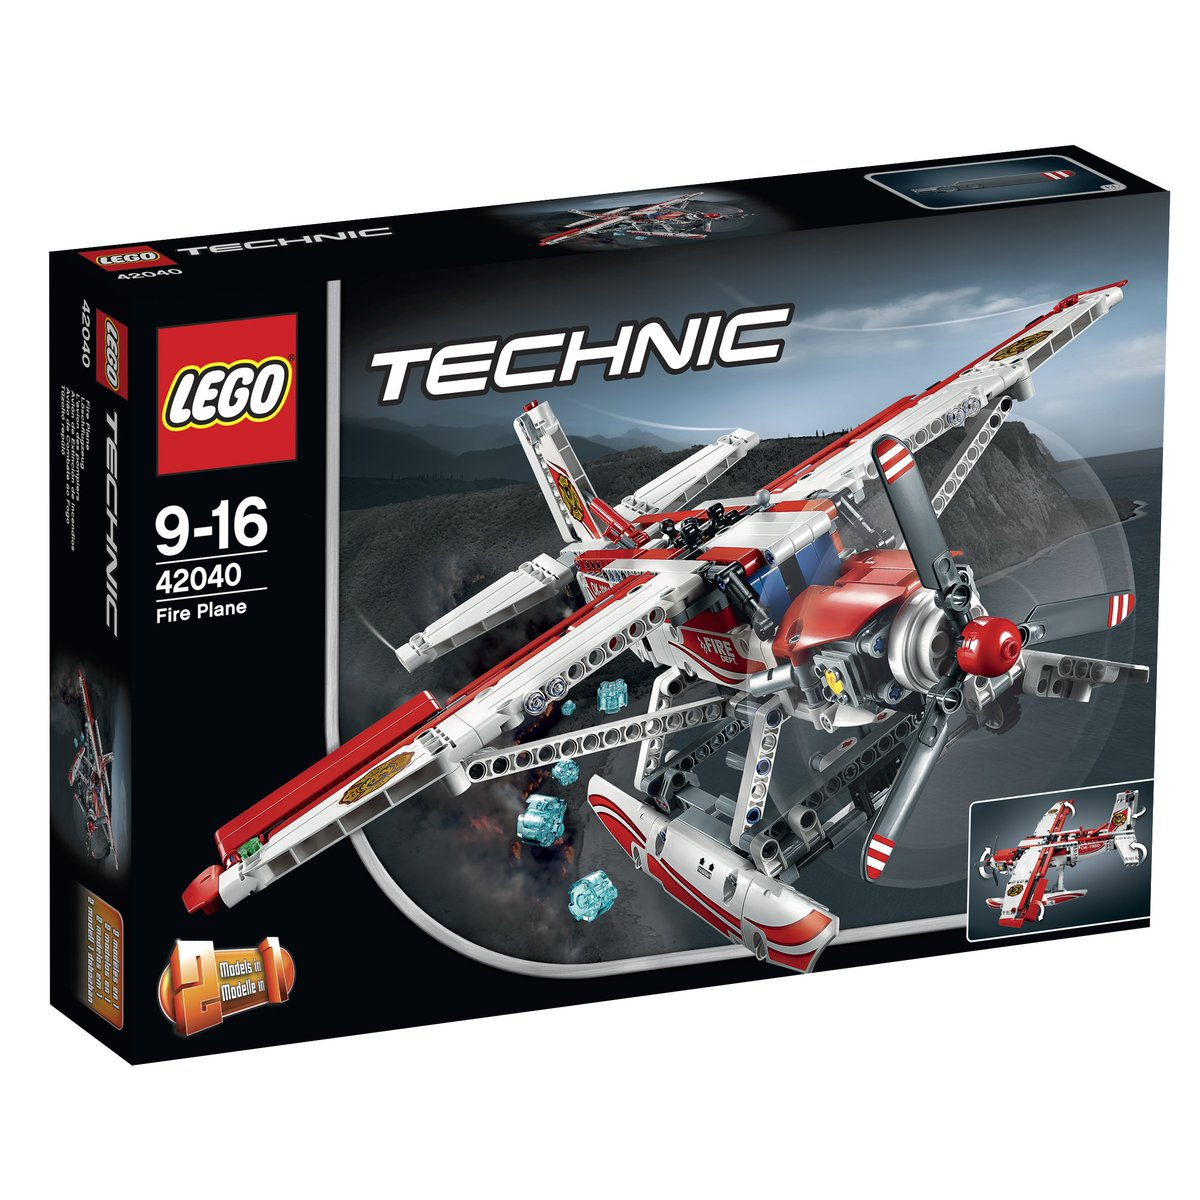 The Great Christmas Giveaway Day 3: Win £300 worth of Lego Technics https://t.co/cSRo4rHxKP https://t.co/0YF23q8yAg